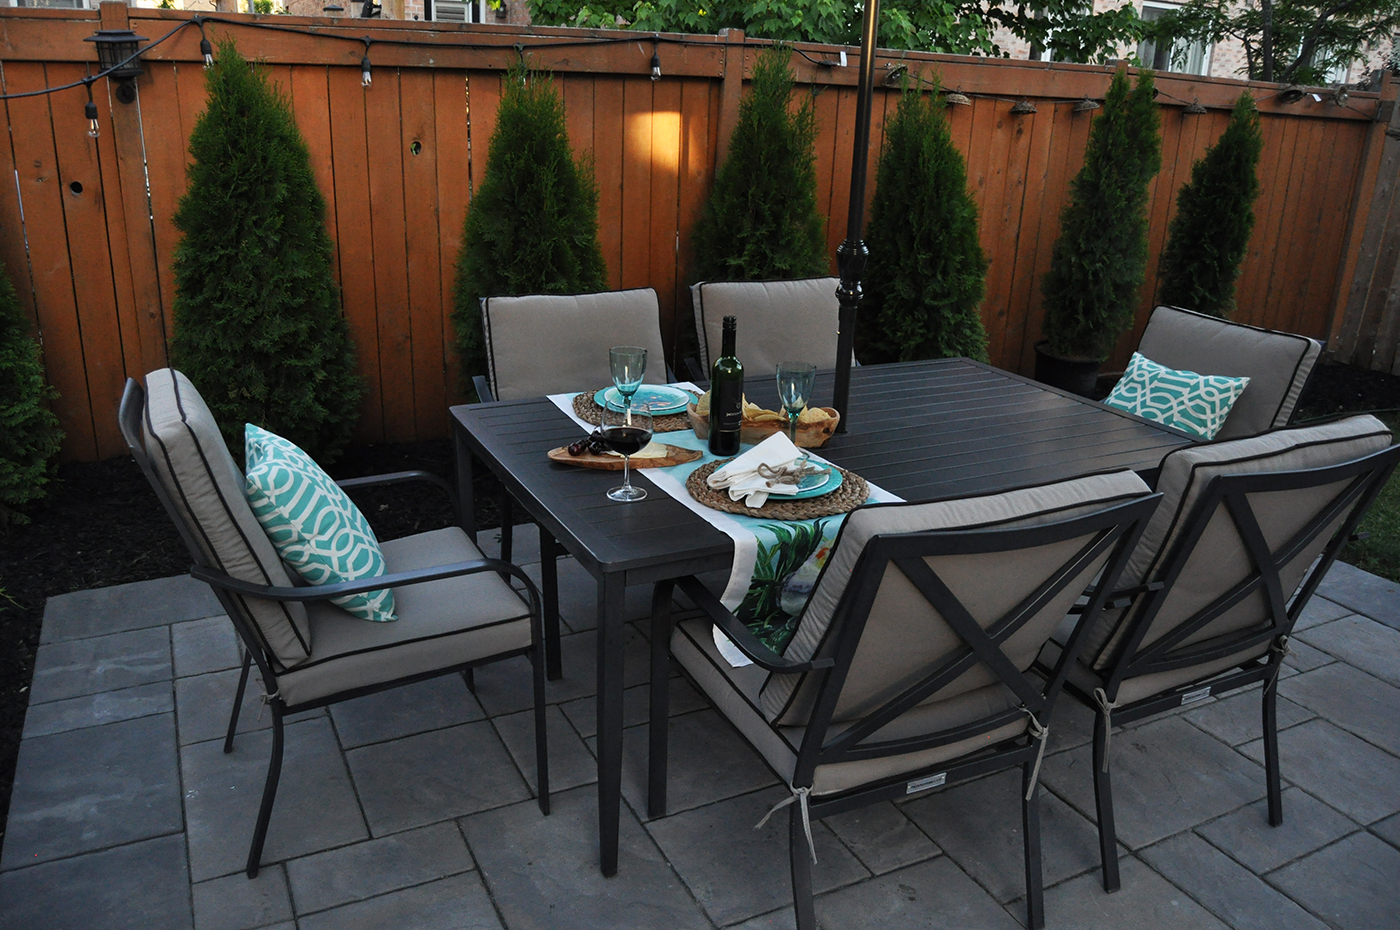 Seating 6, This Eating Area Has A Romantic Cafe Feel With The Private  Setting Of These Bronte Creek Homeownersu0027 Own Backyard. The Patio Stones  Are Designed ...